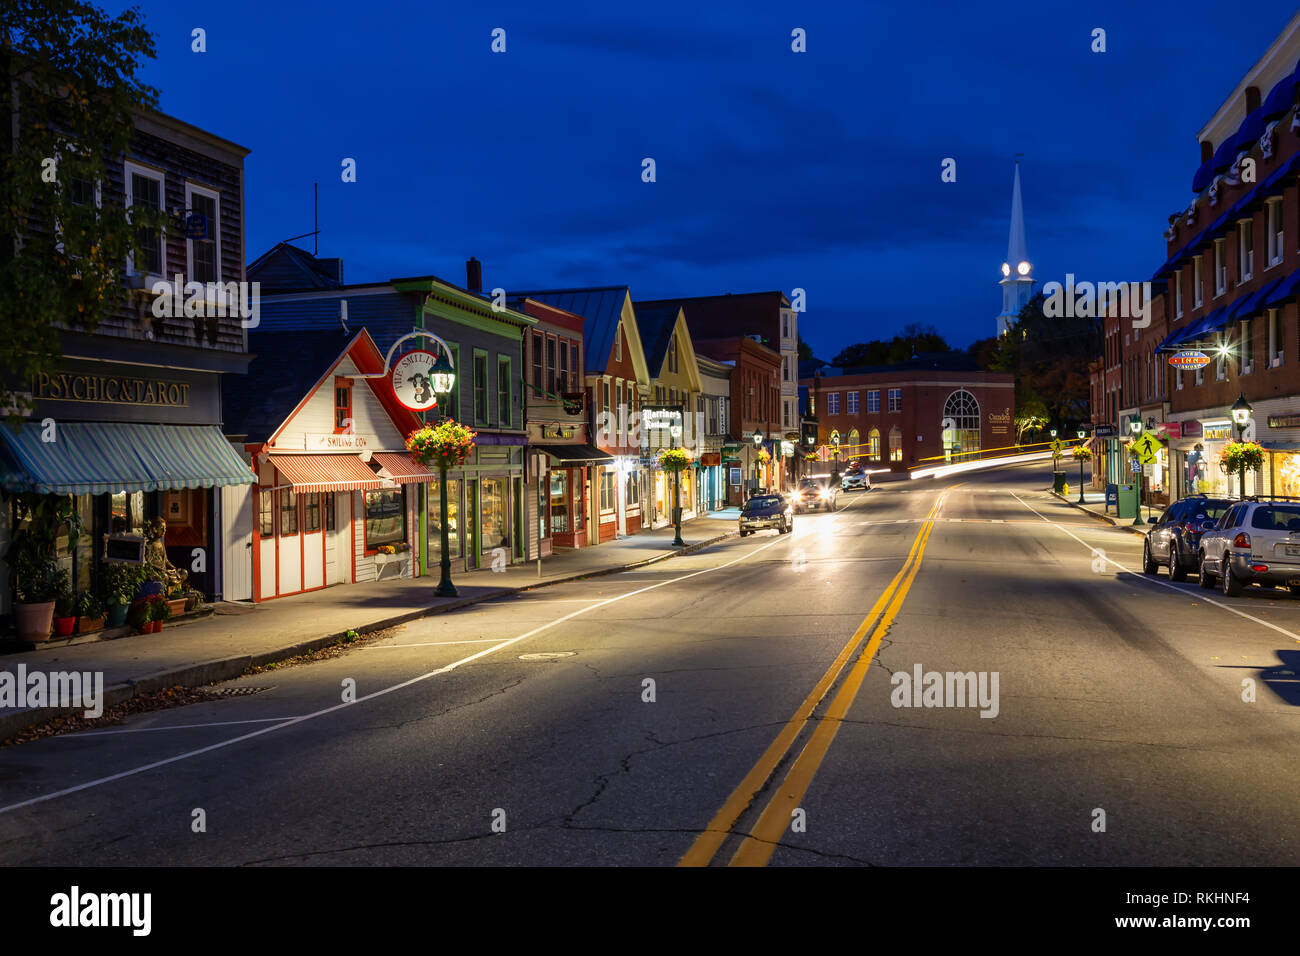 Camden Maine Stock Photos & Camden Maine Stock Images - Alamy